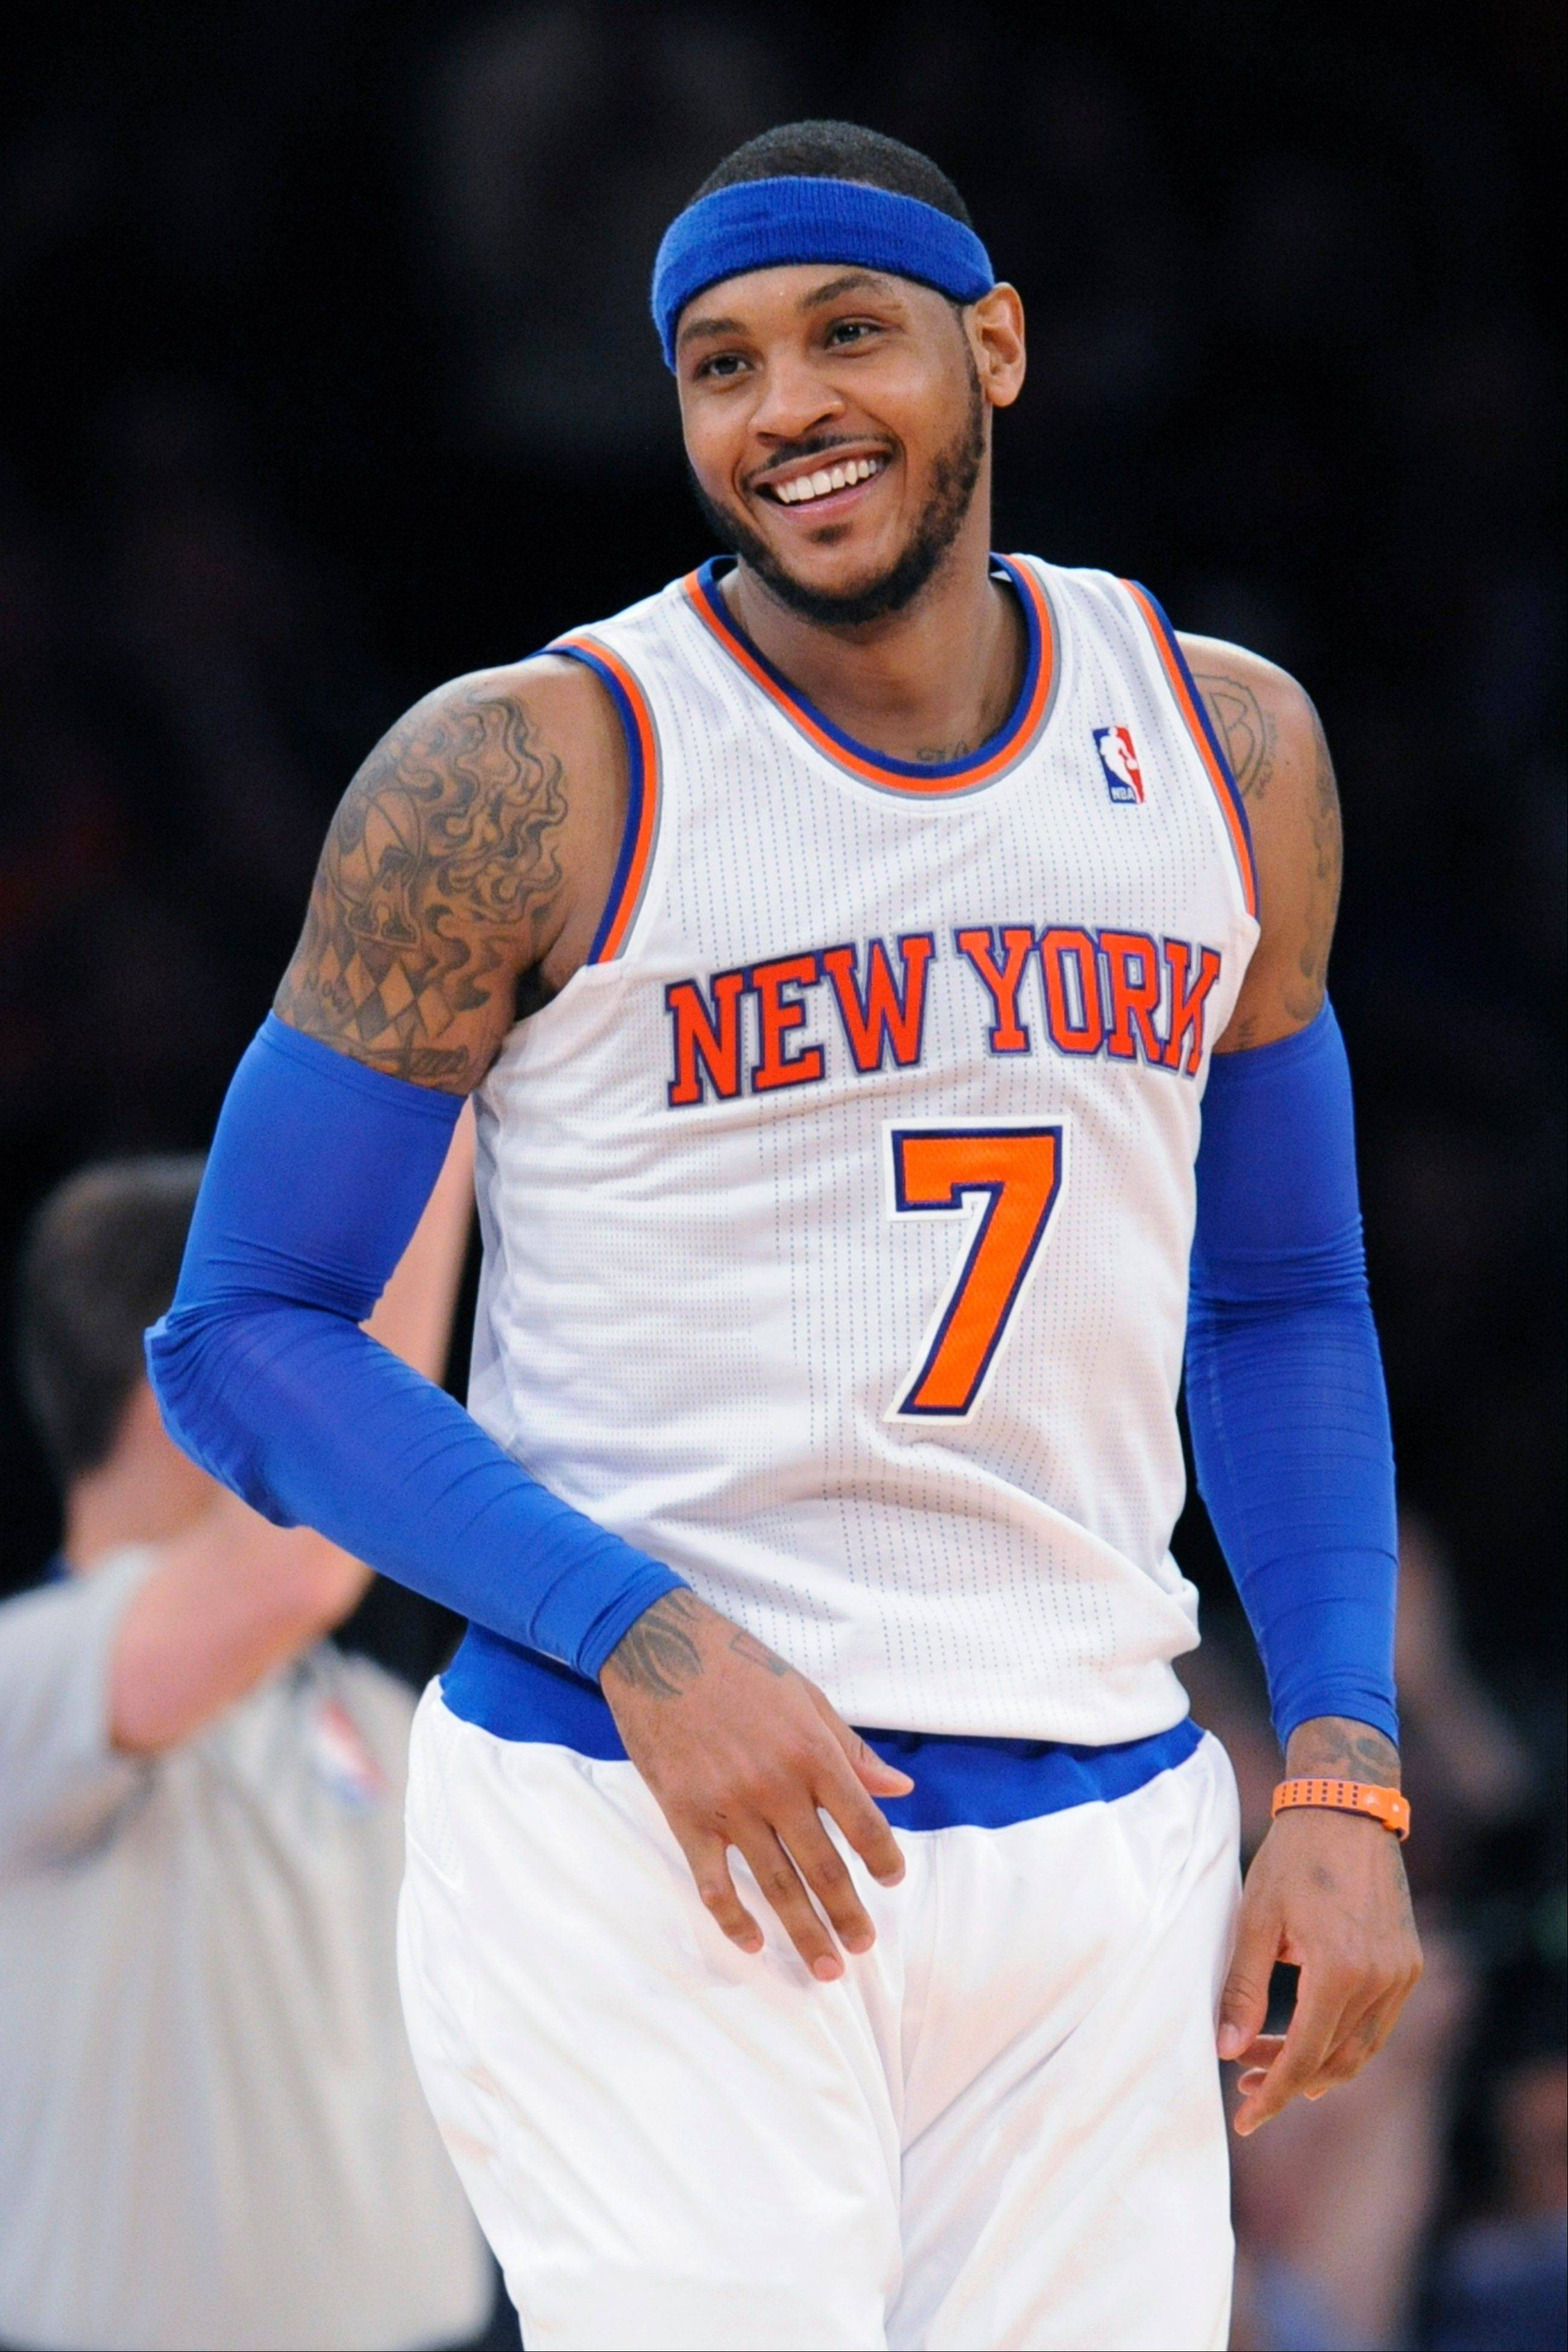 The Knicks' Carmelo Anthony smiles after hitting a 3-point shot during a game earlier this month.